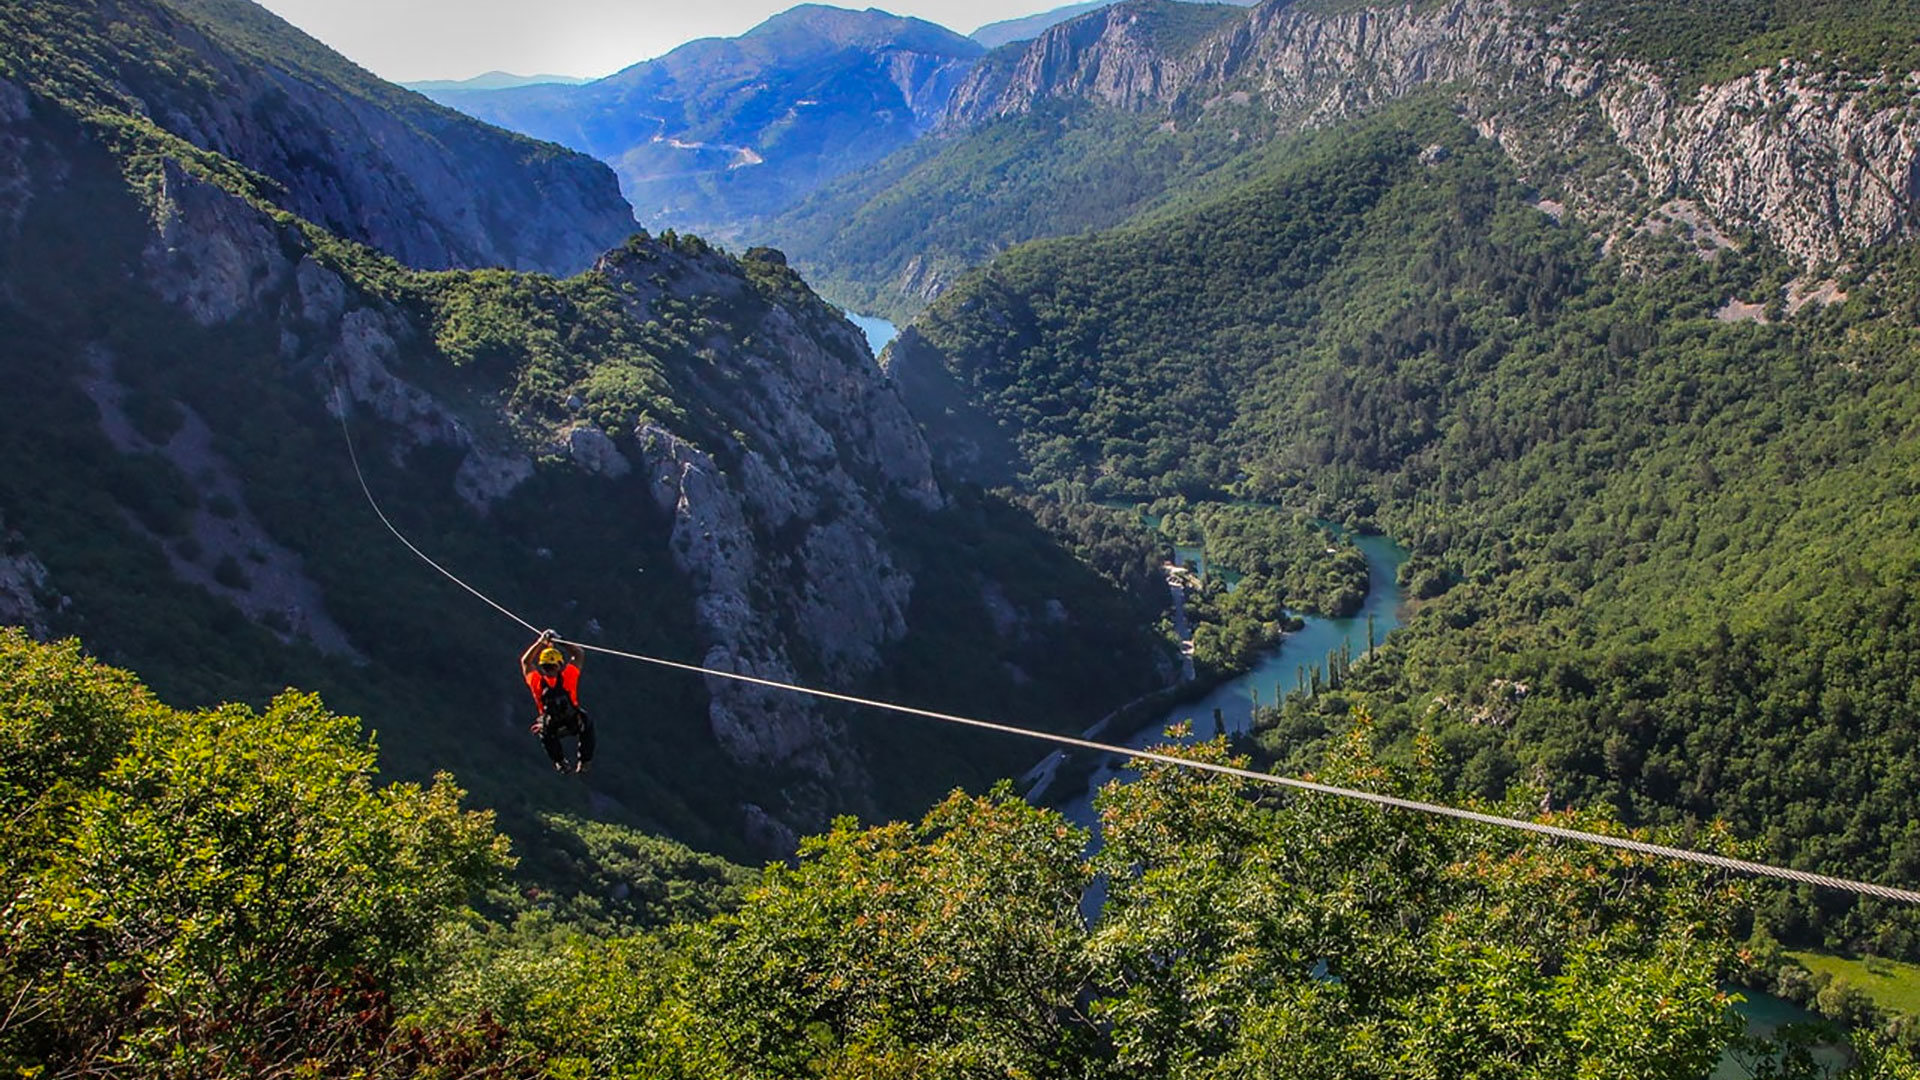 Glide on a zipline over a canyon!